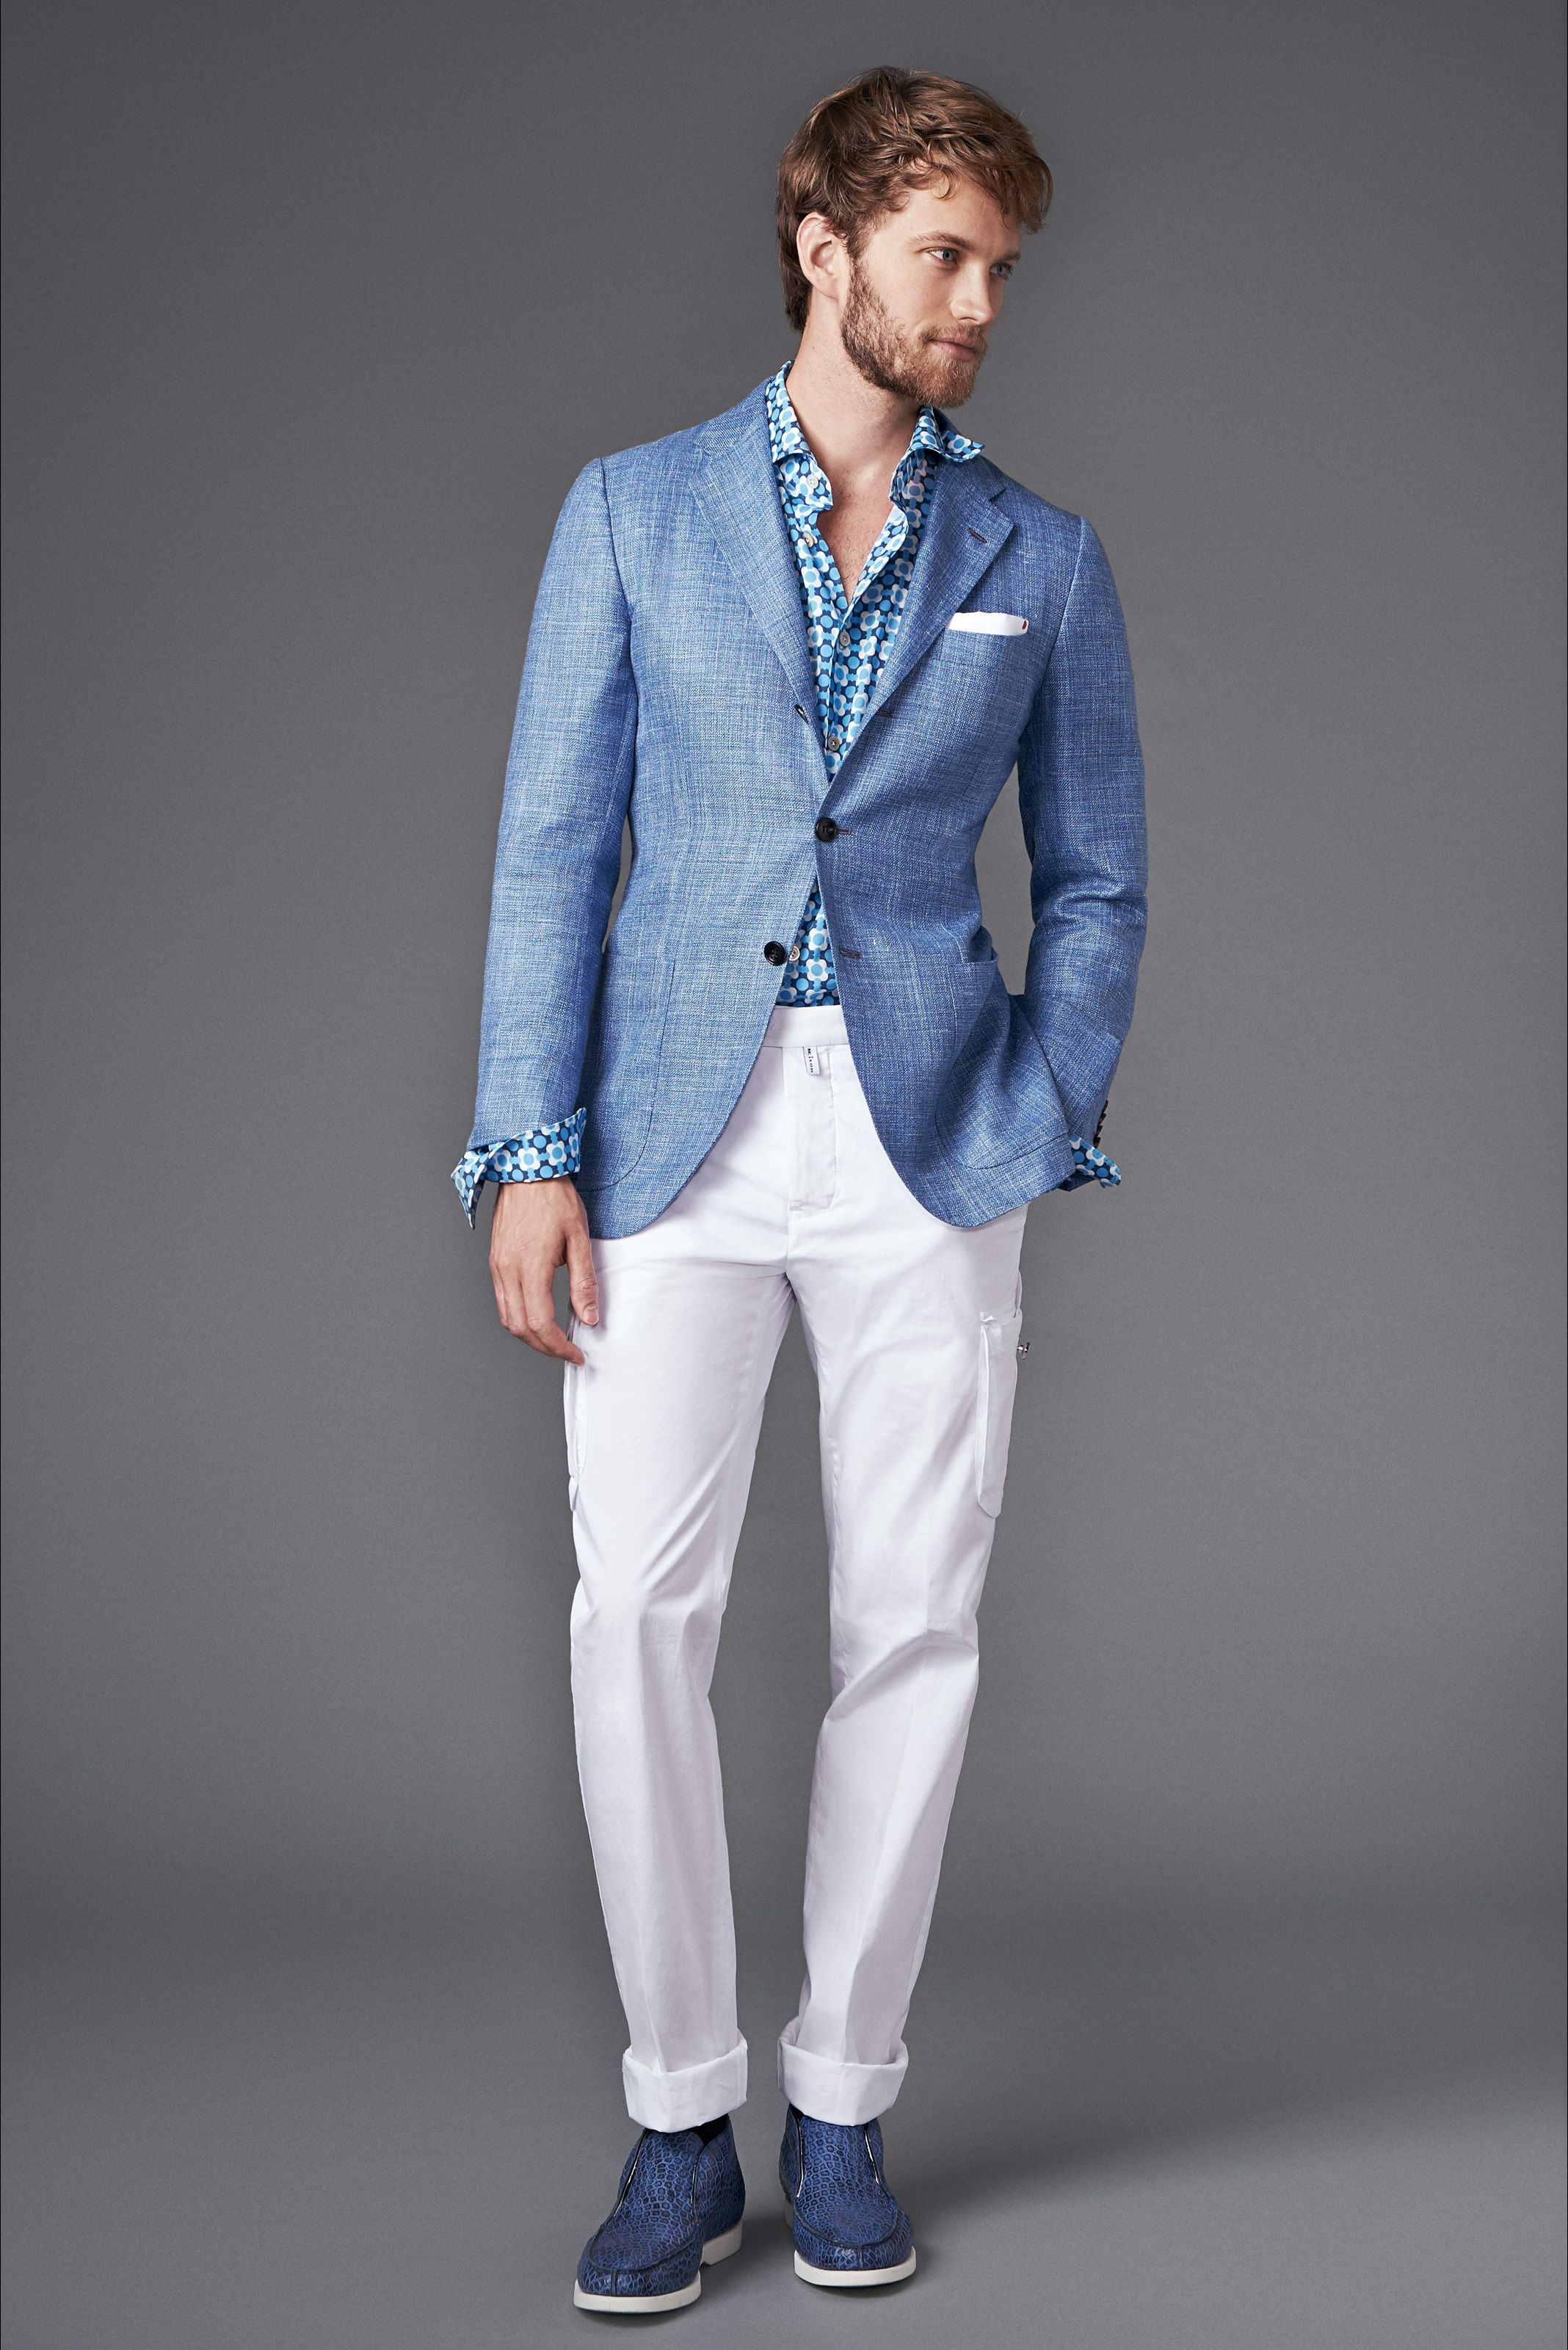 Kiton - Look 10 Total Look  CurrentFashionTrends  48d7bb1b9f2